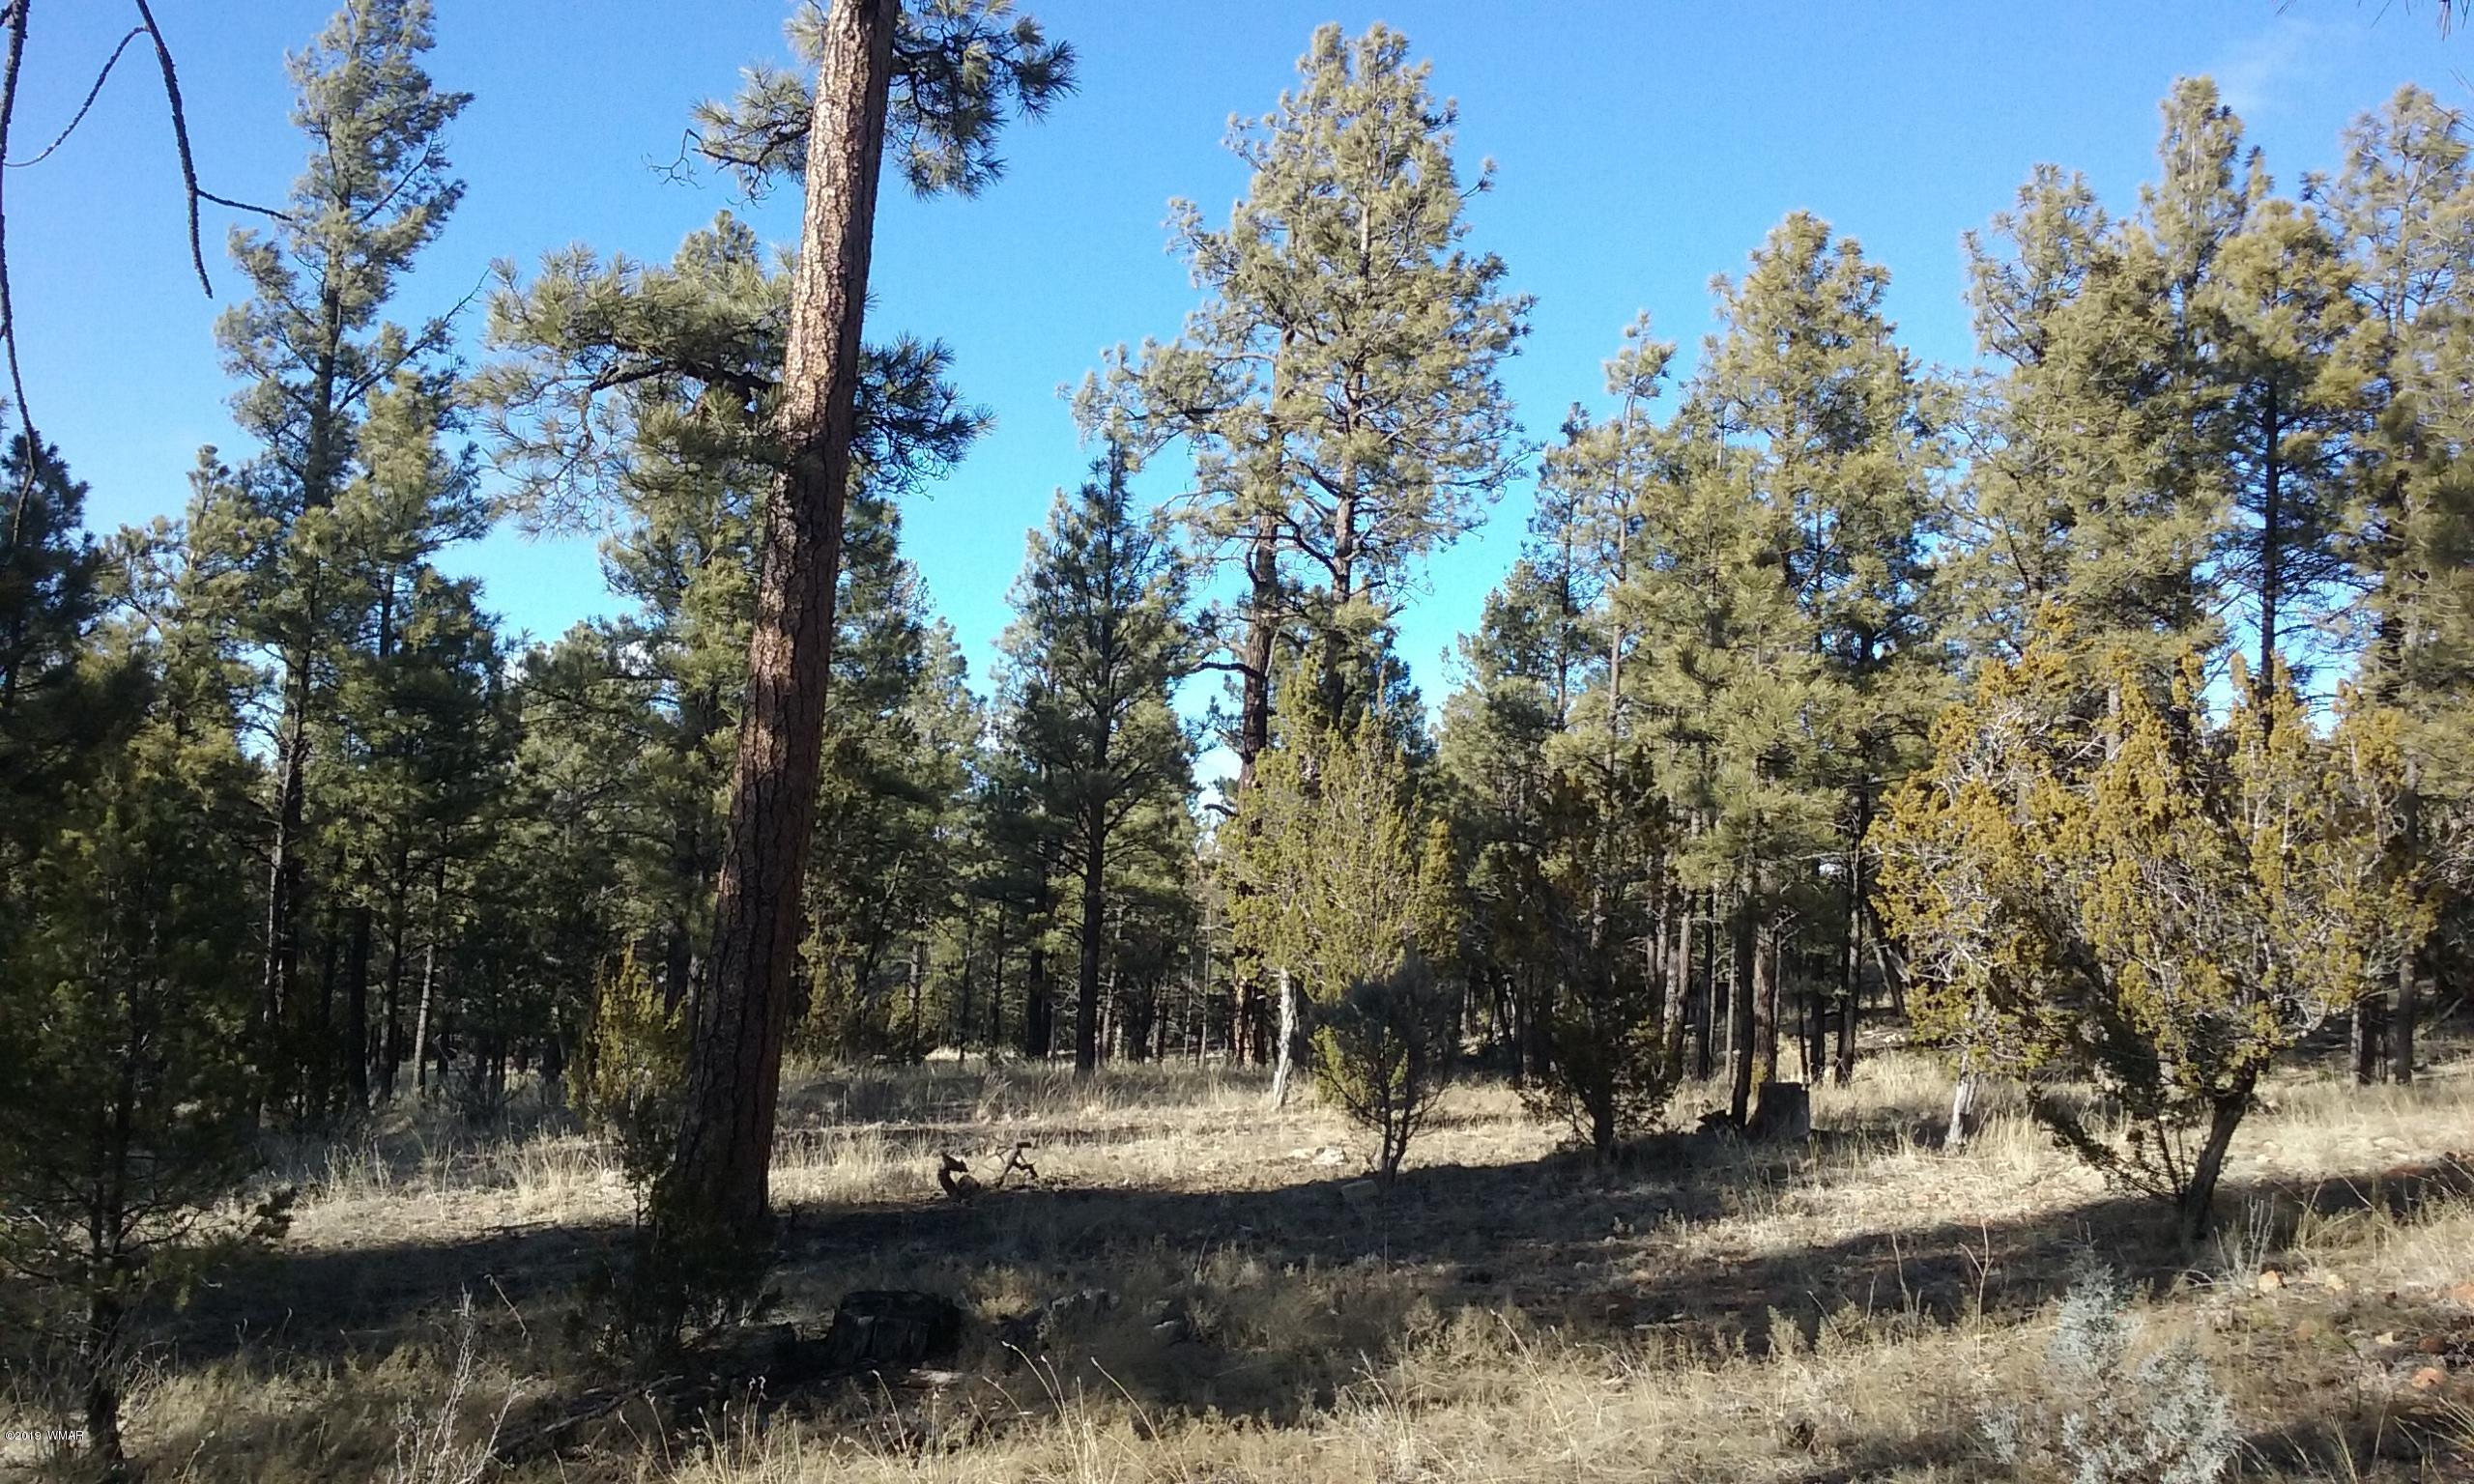 Wonderful property with tall ponderosa  pines, lots of natural vegetation. Beautiful views with privacy. Great location!! Secluded and private yet still close by shops, restaurants and close by access to forest service entries. Great place to build potential dream cabin in the woods.